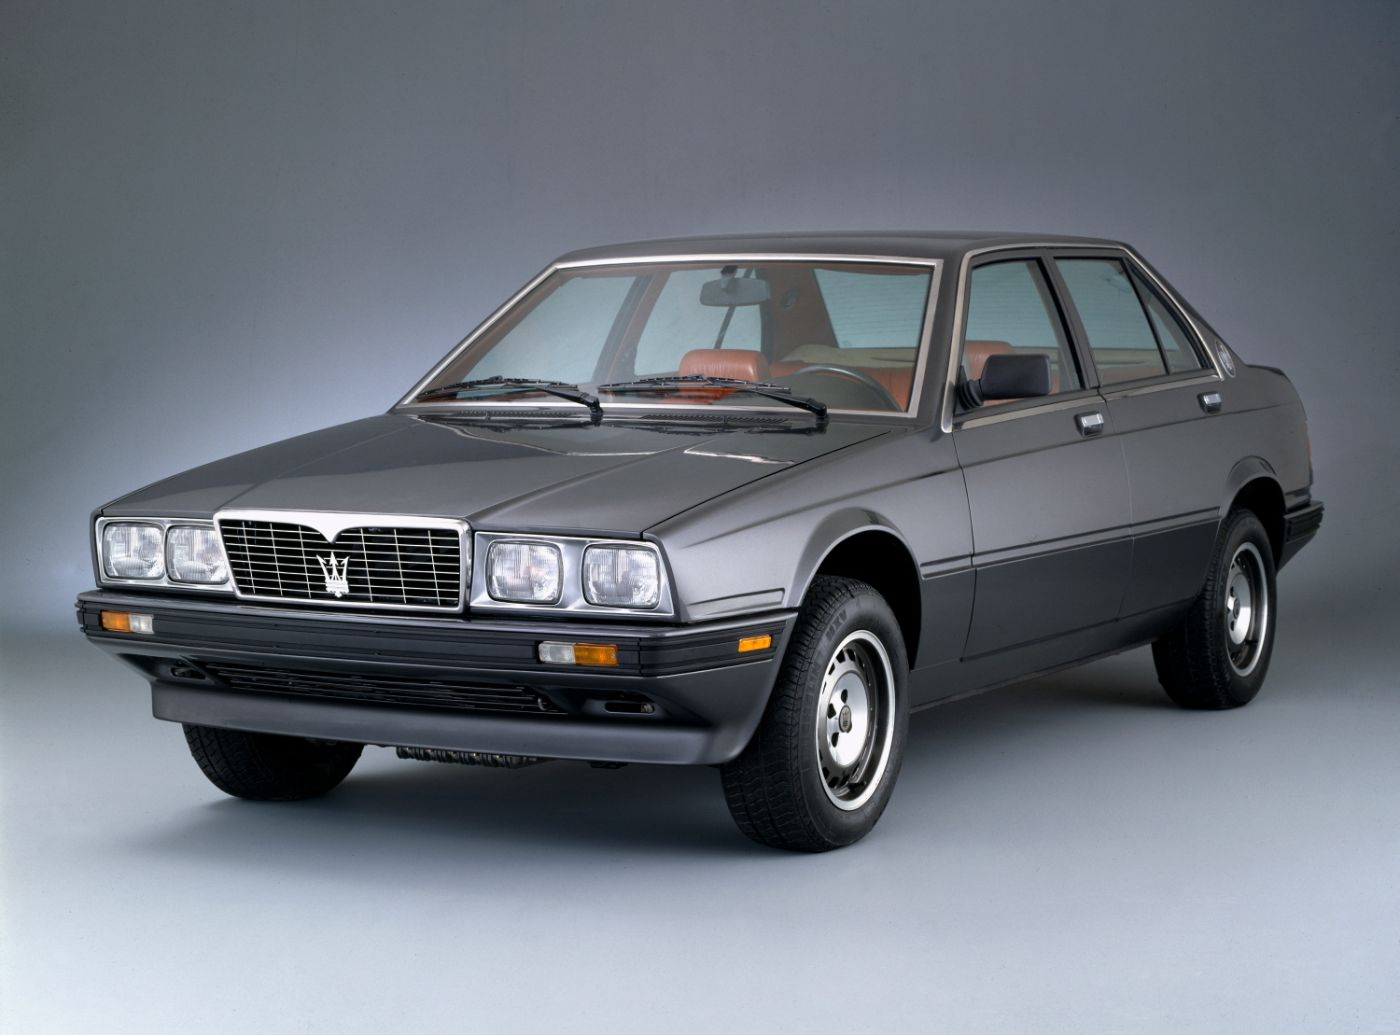 1985 Maserati 420 - overview of a gray classic car model